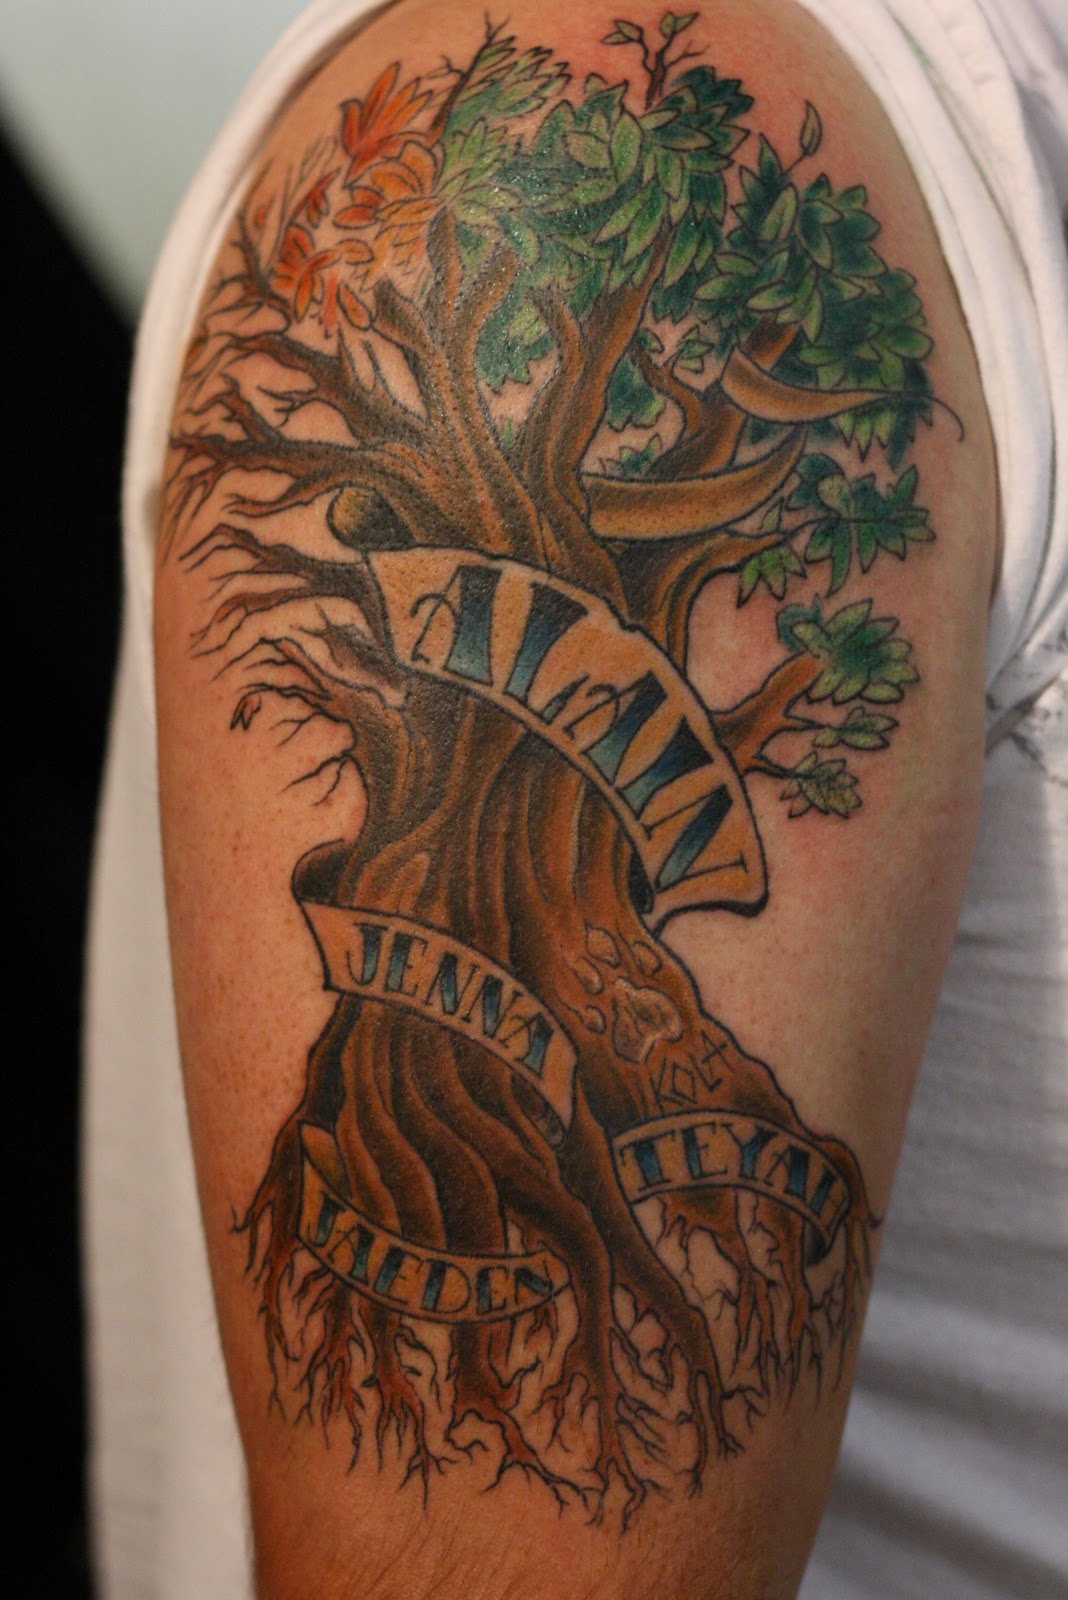 Family Tree Tattoos Designs, Ideas and Meaning | Tattoos ...